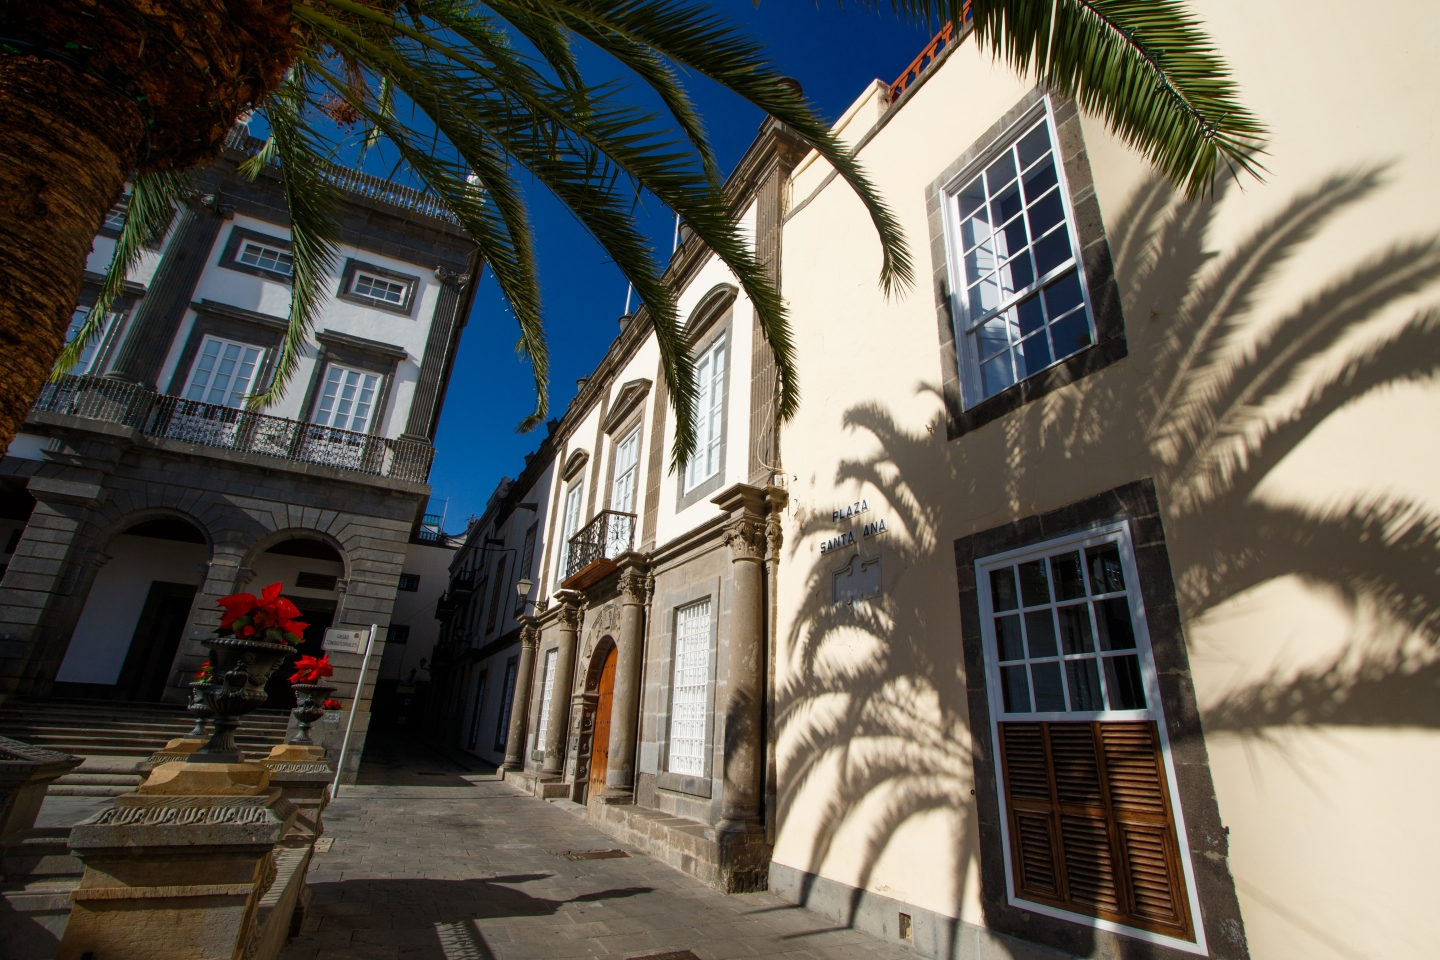 Vegueta old town in Gran Canaria is over 500 years old